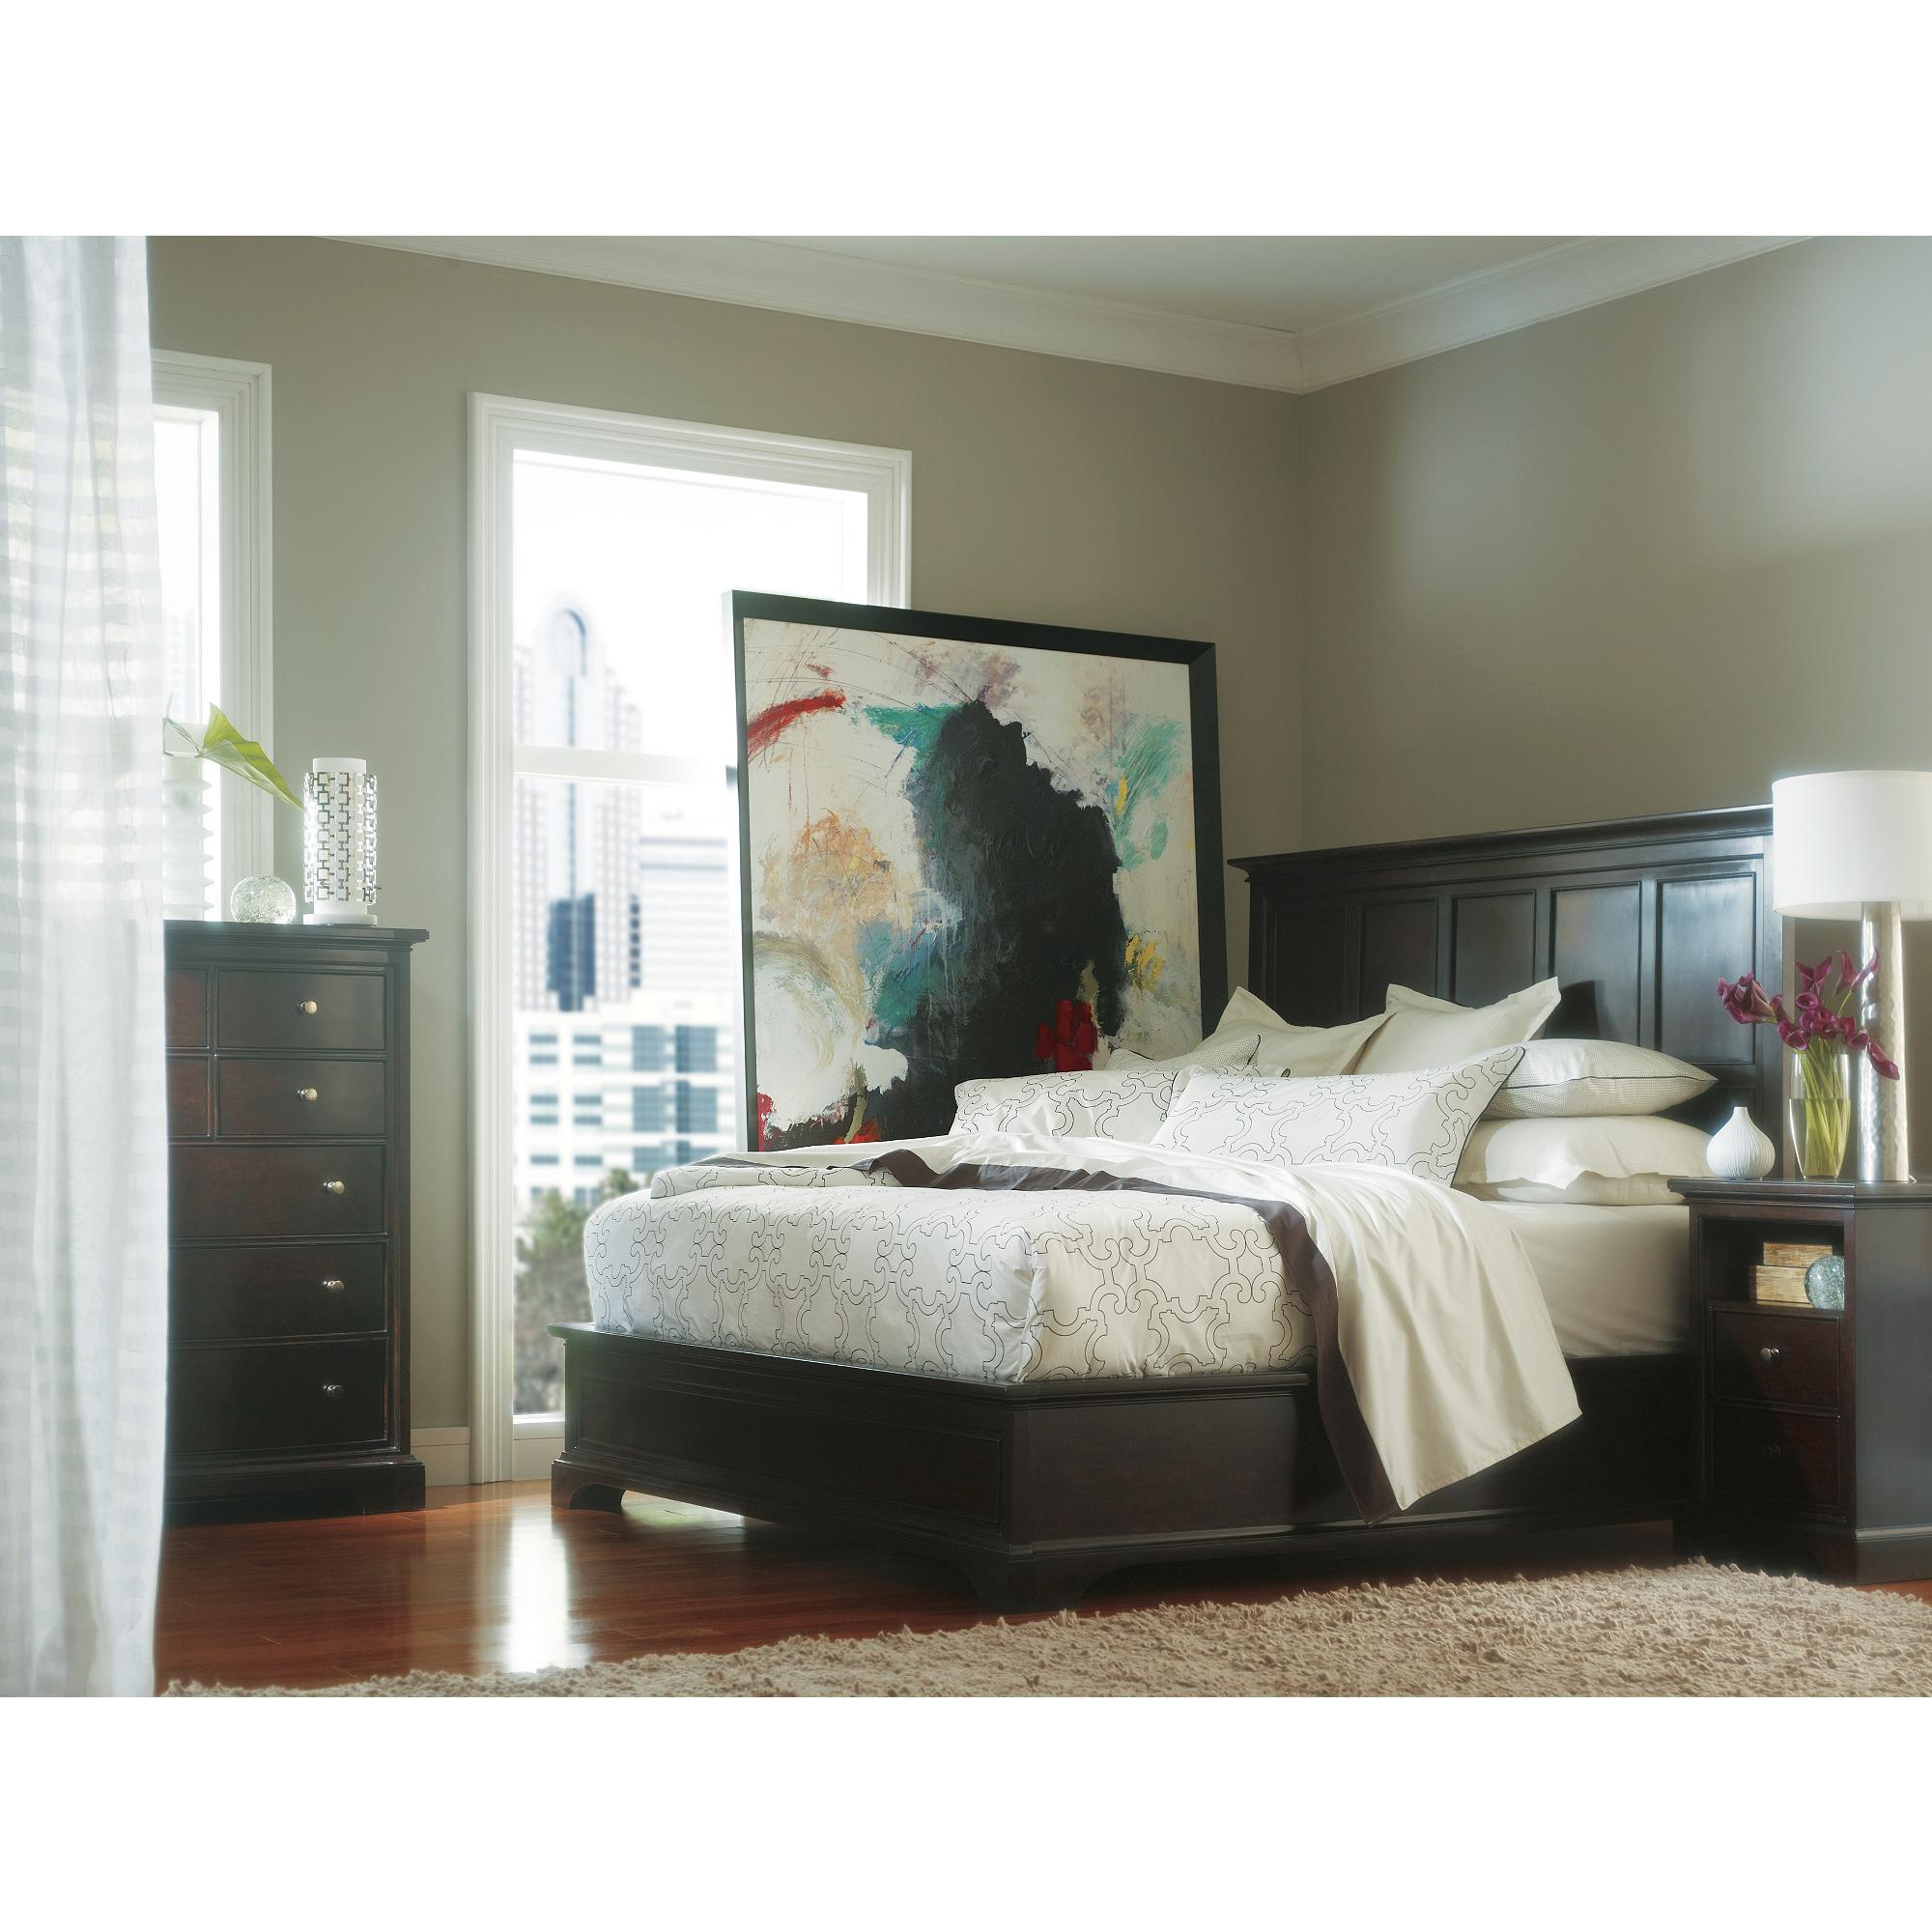 Stanley Furniture Transitional King Bedroom Group - Item Number: 042-13 K Bedroom Group 1